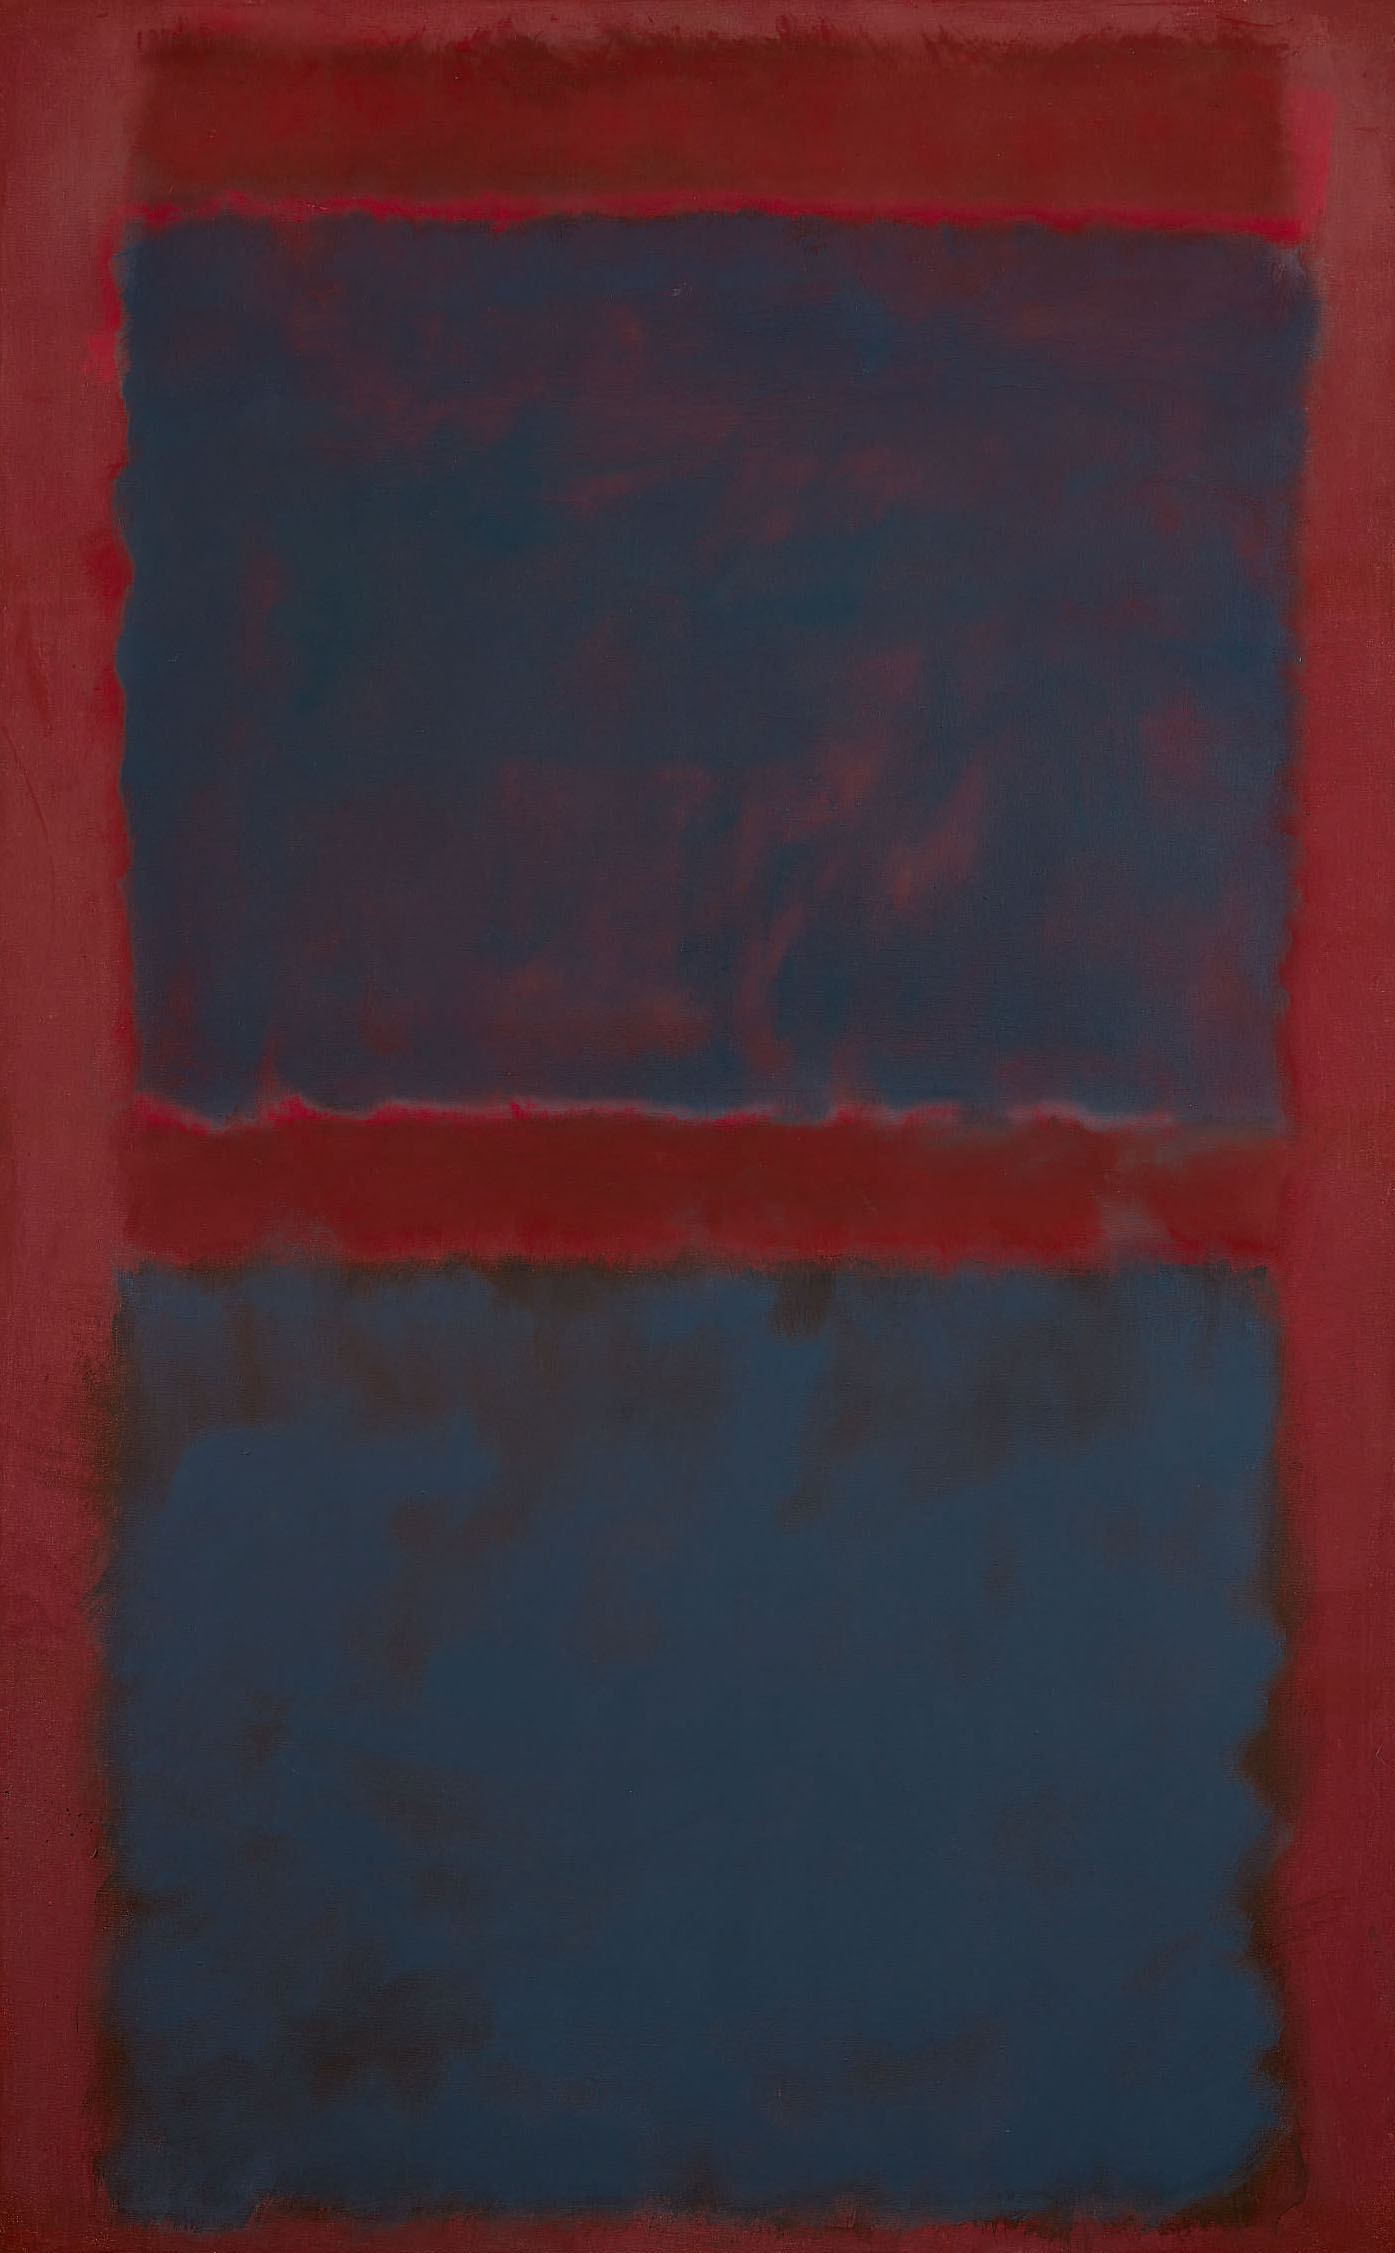 Mark Rothko's Untitled To Sell For $35 Million